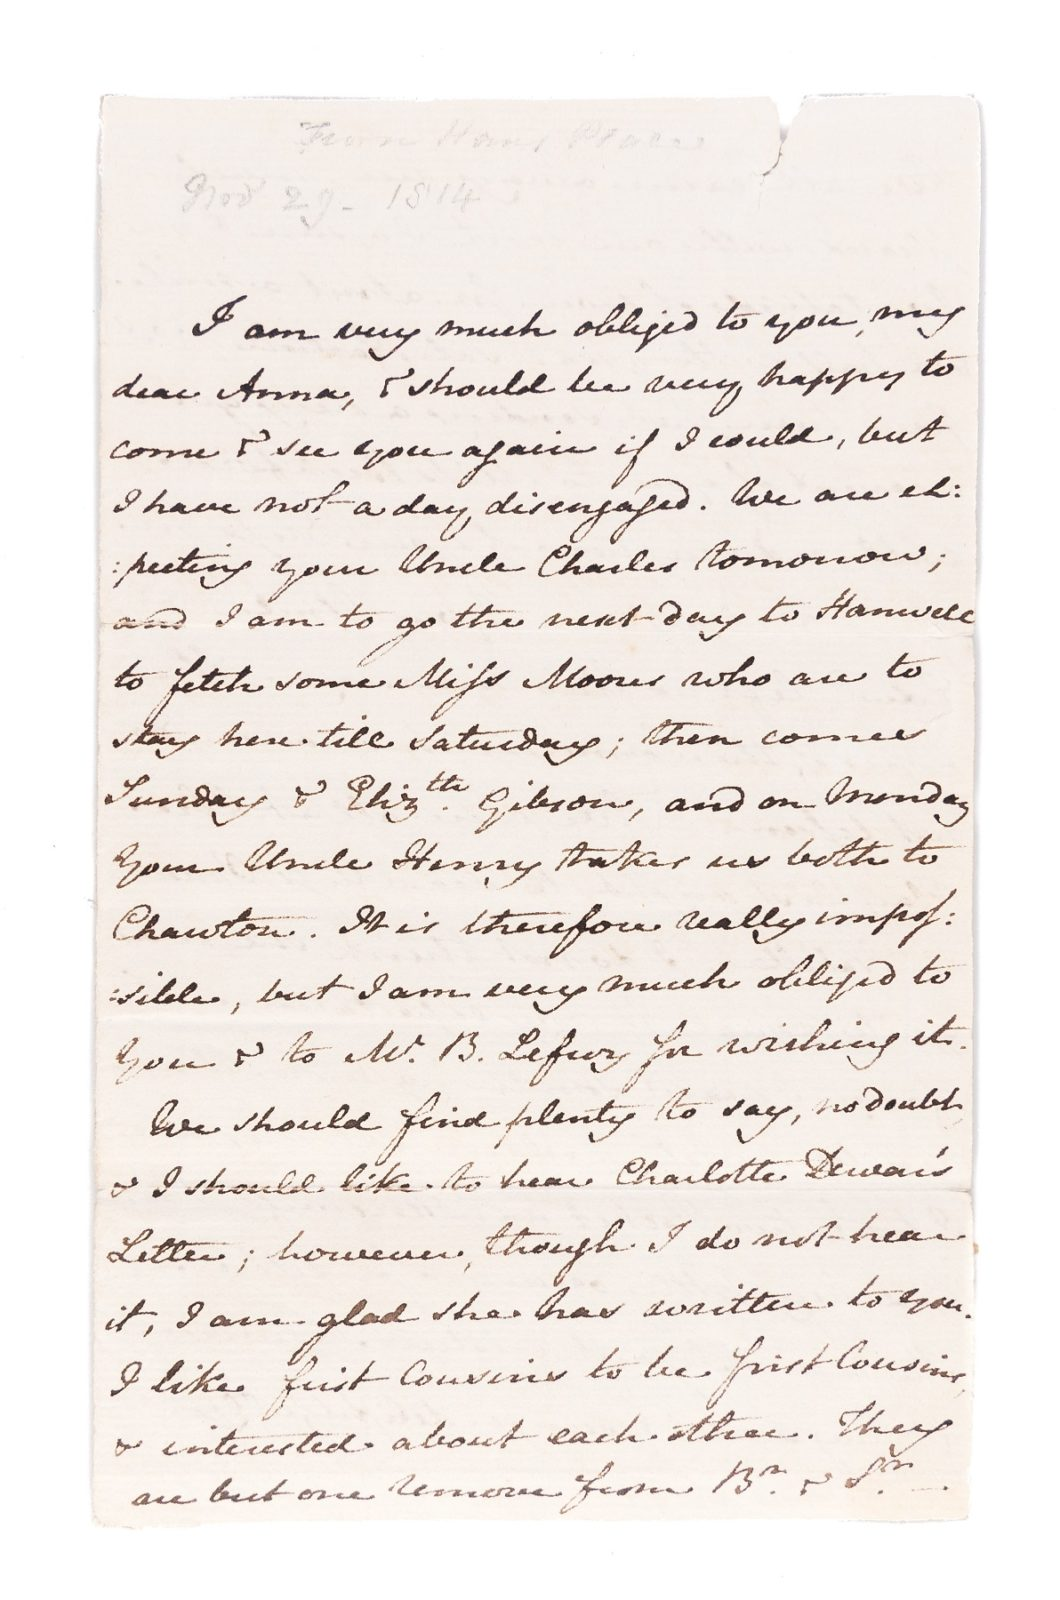 Letter from Jane Austen to Anna Lefroy, 29 November 1814. Page 1